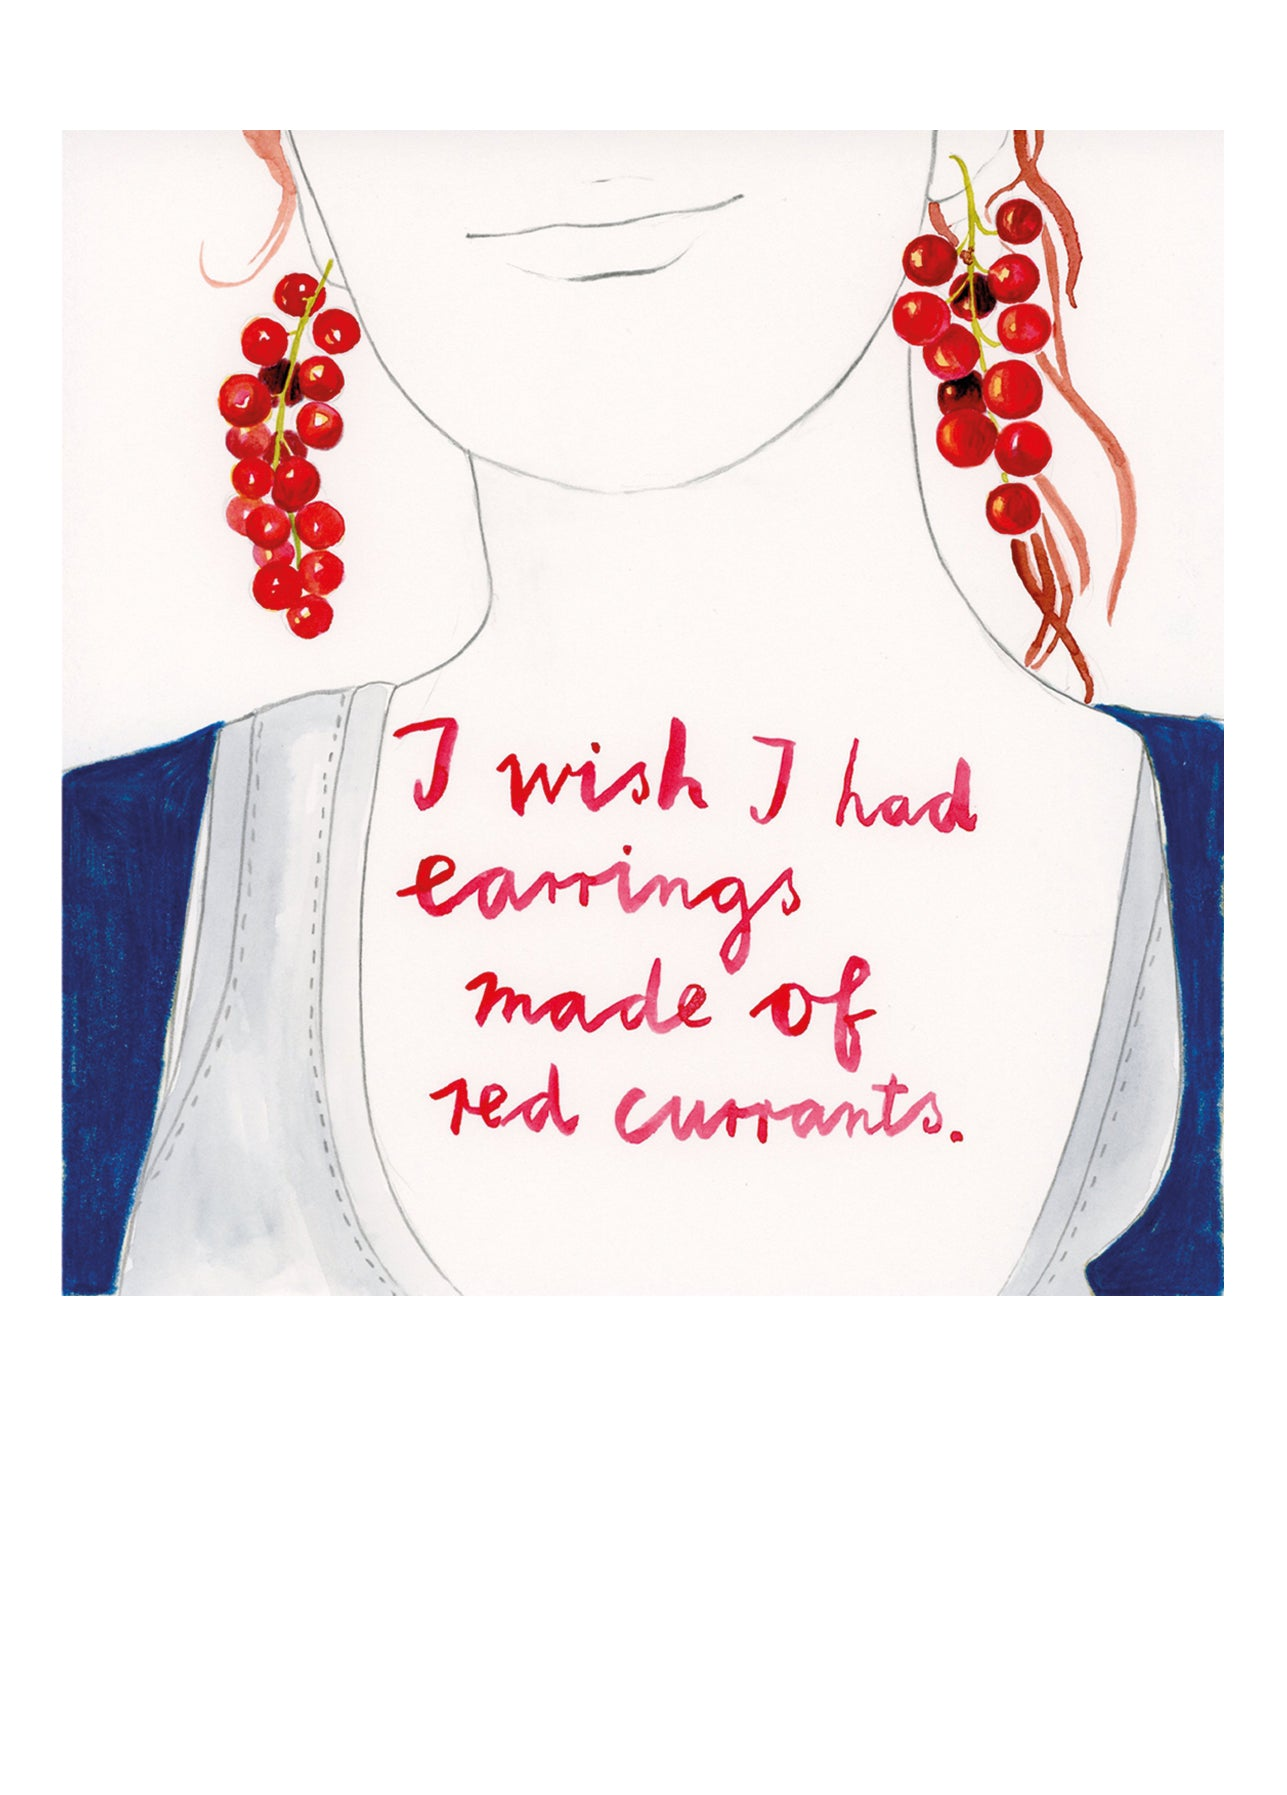 I wish I had earrings made of red currants